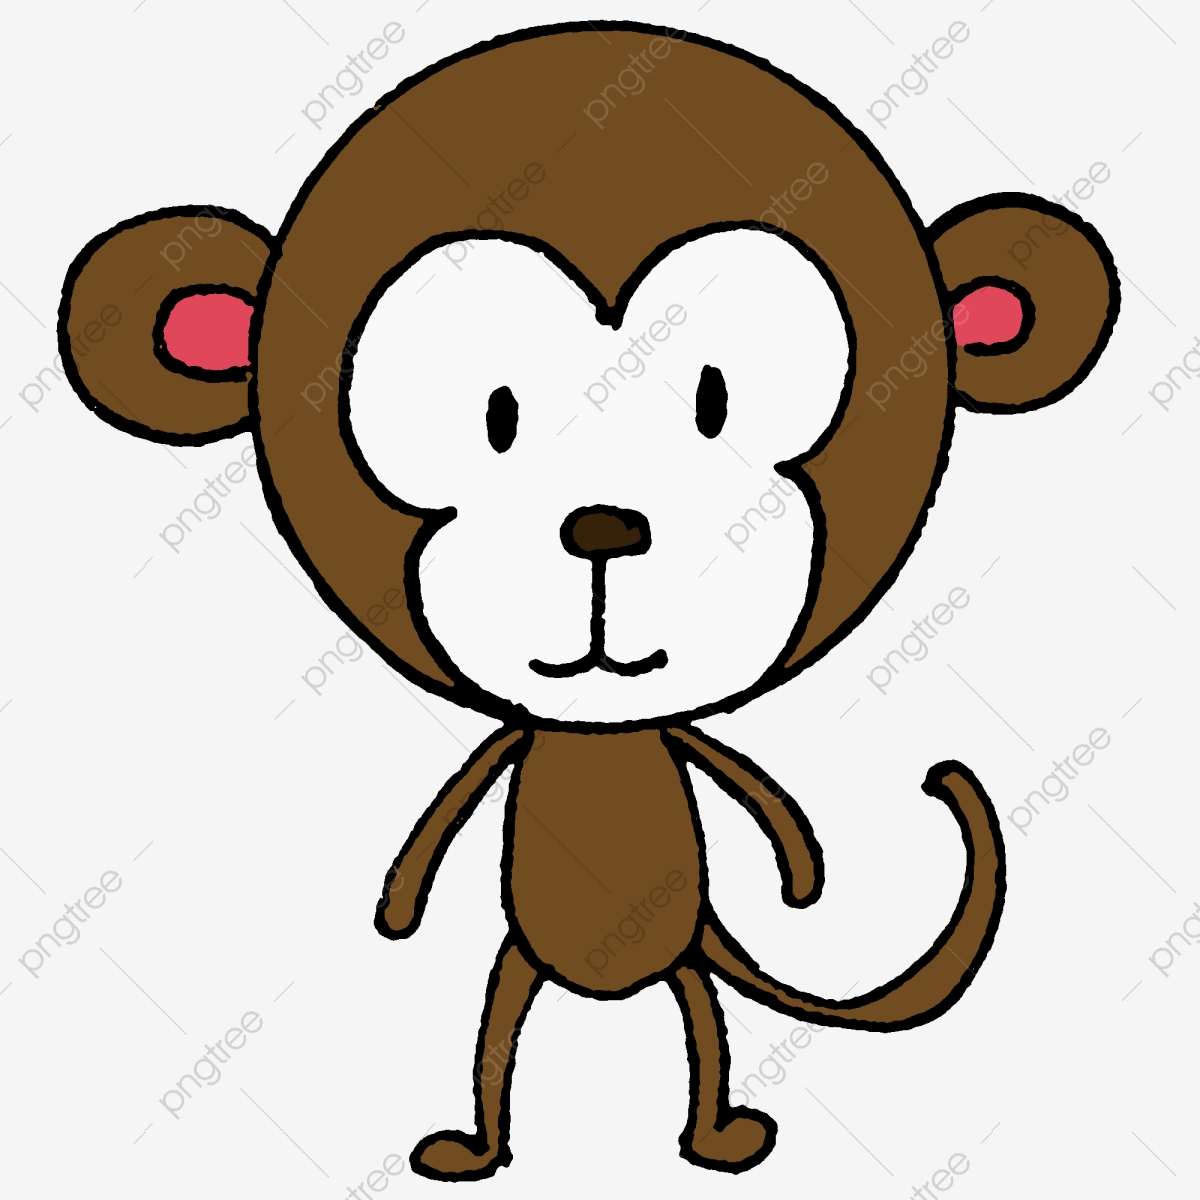 Cartoon Monkey, Monkey Clipart, Cartoon Clipart, Cartoon PNG.